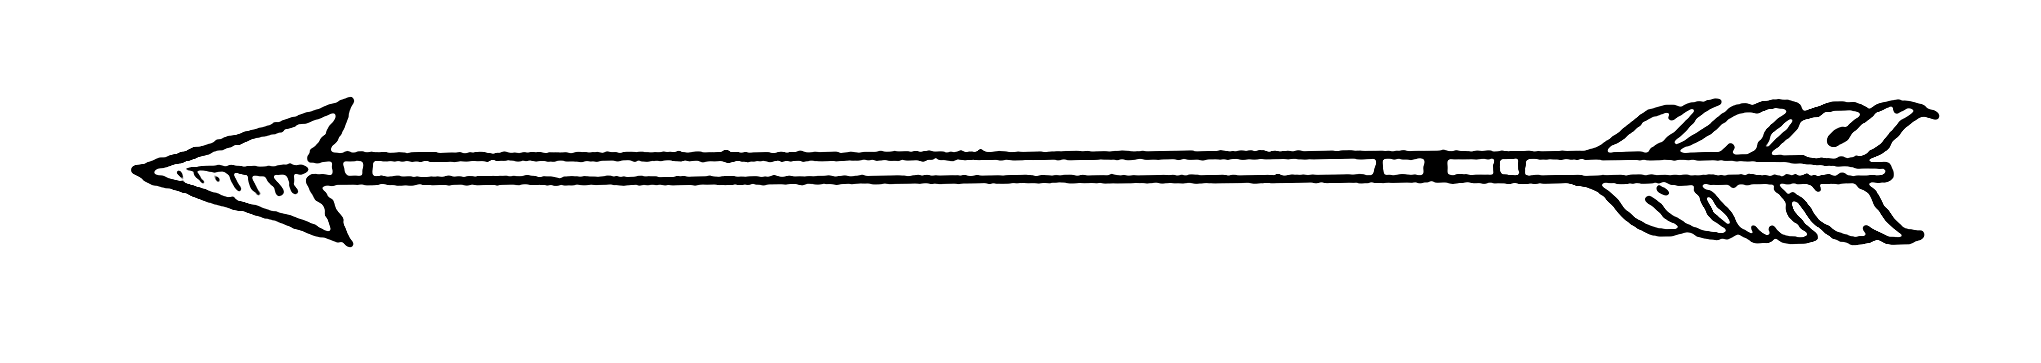 Drawing Lines With Arrows In Photo : File arrow psf wikimedia commons